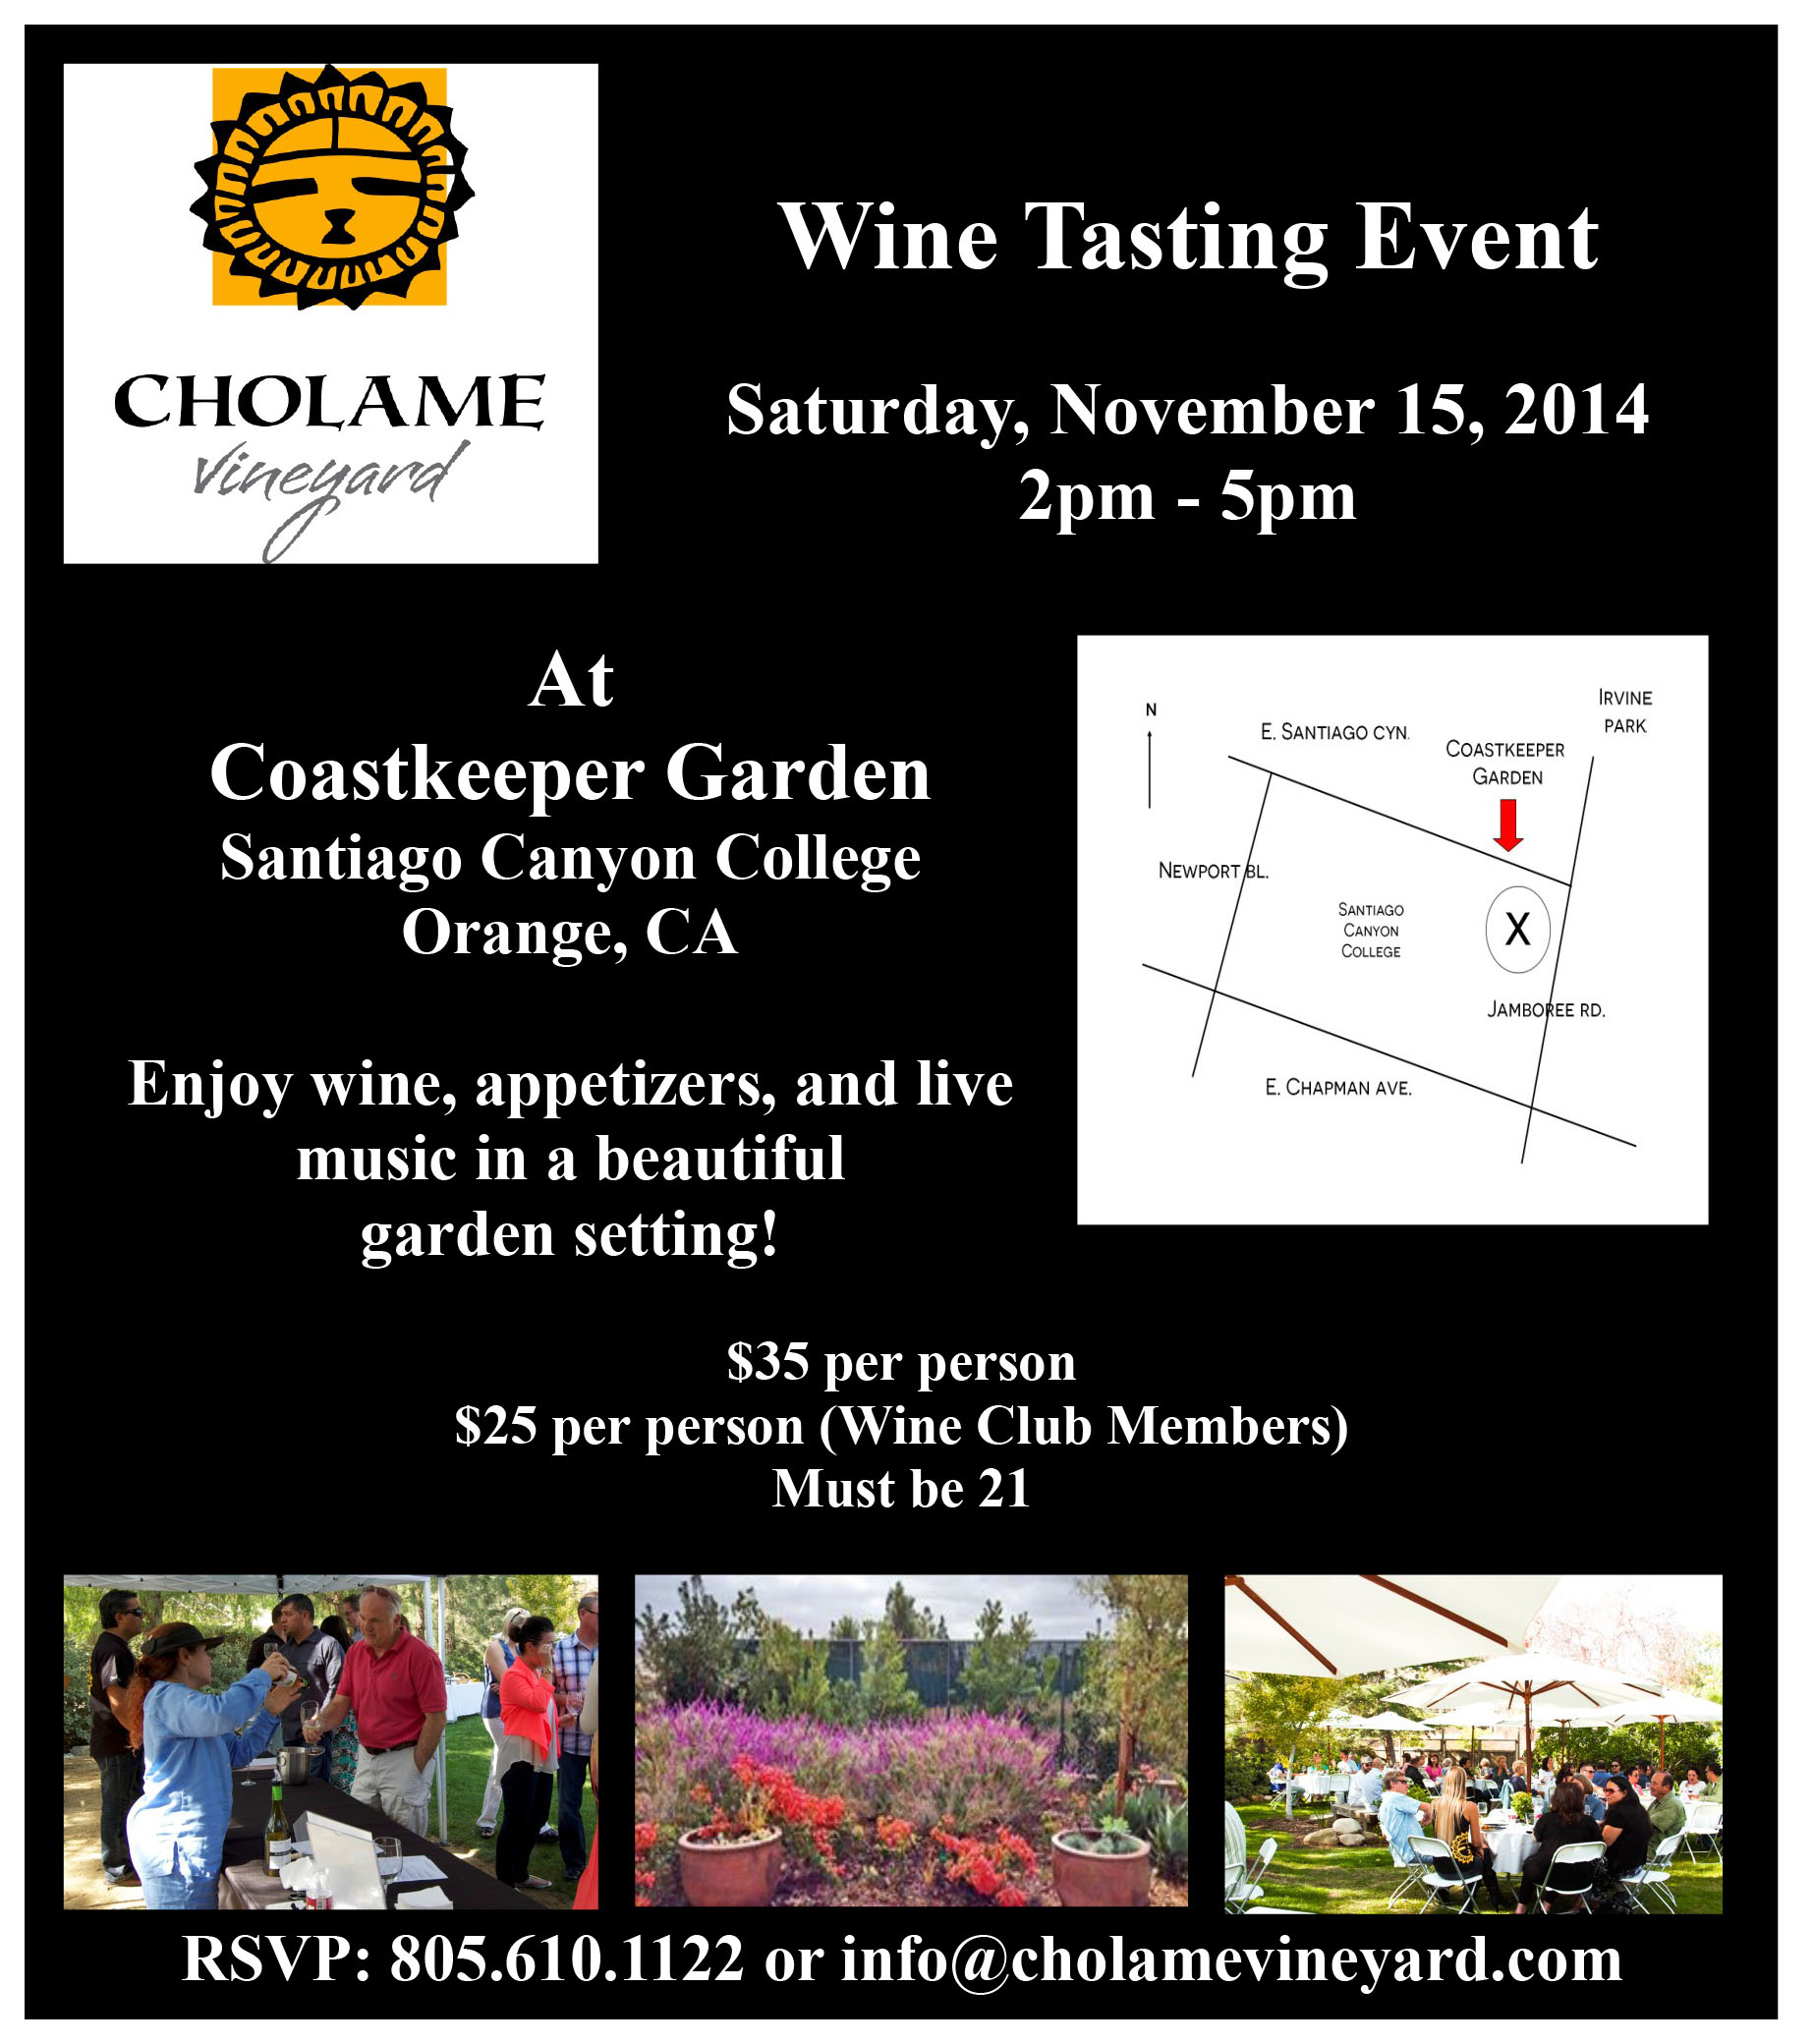 Cholame_Vineyard_Open_House.jpg